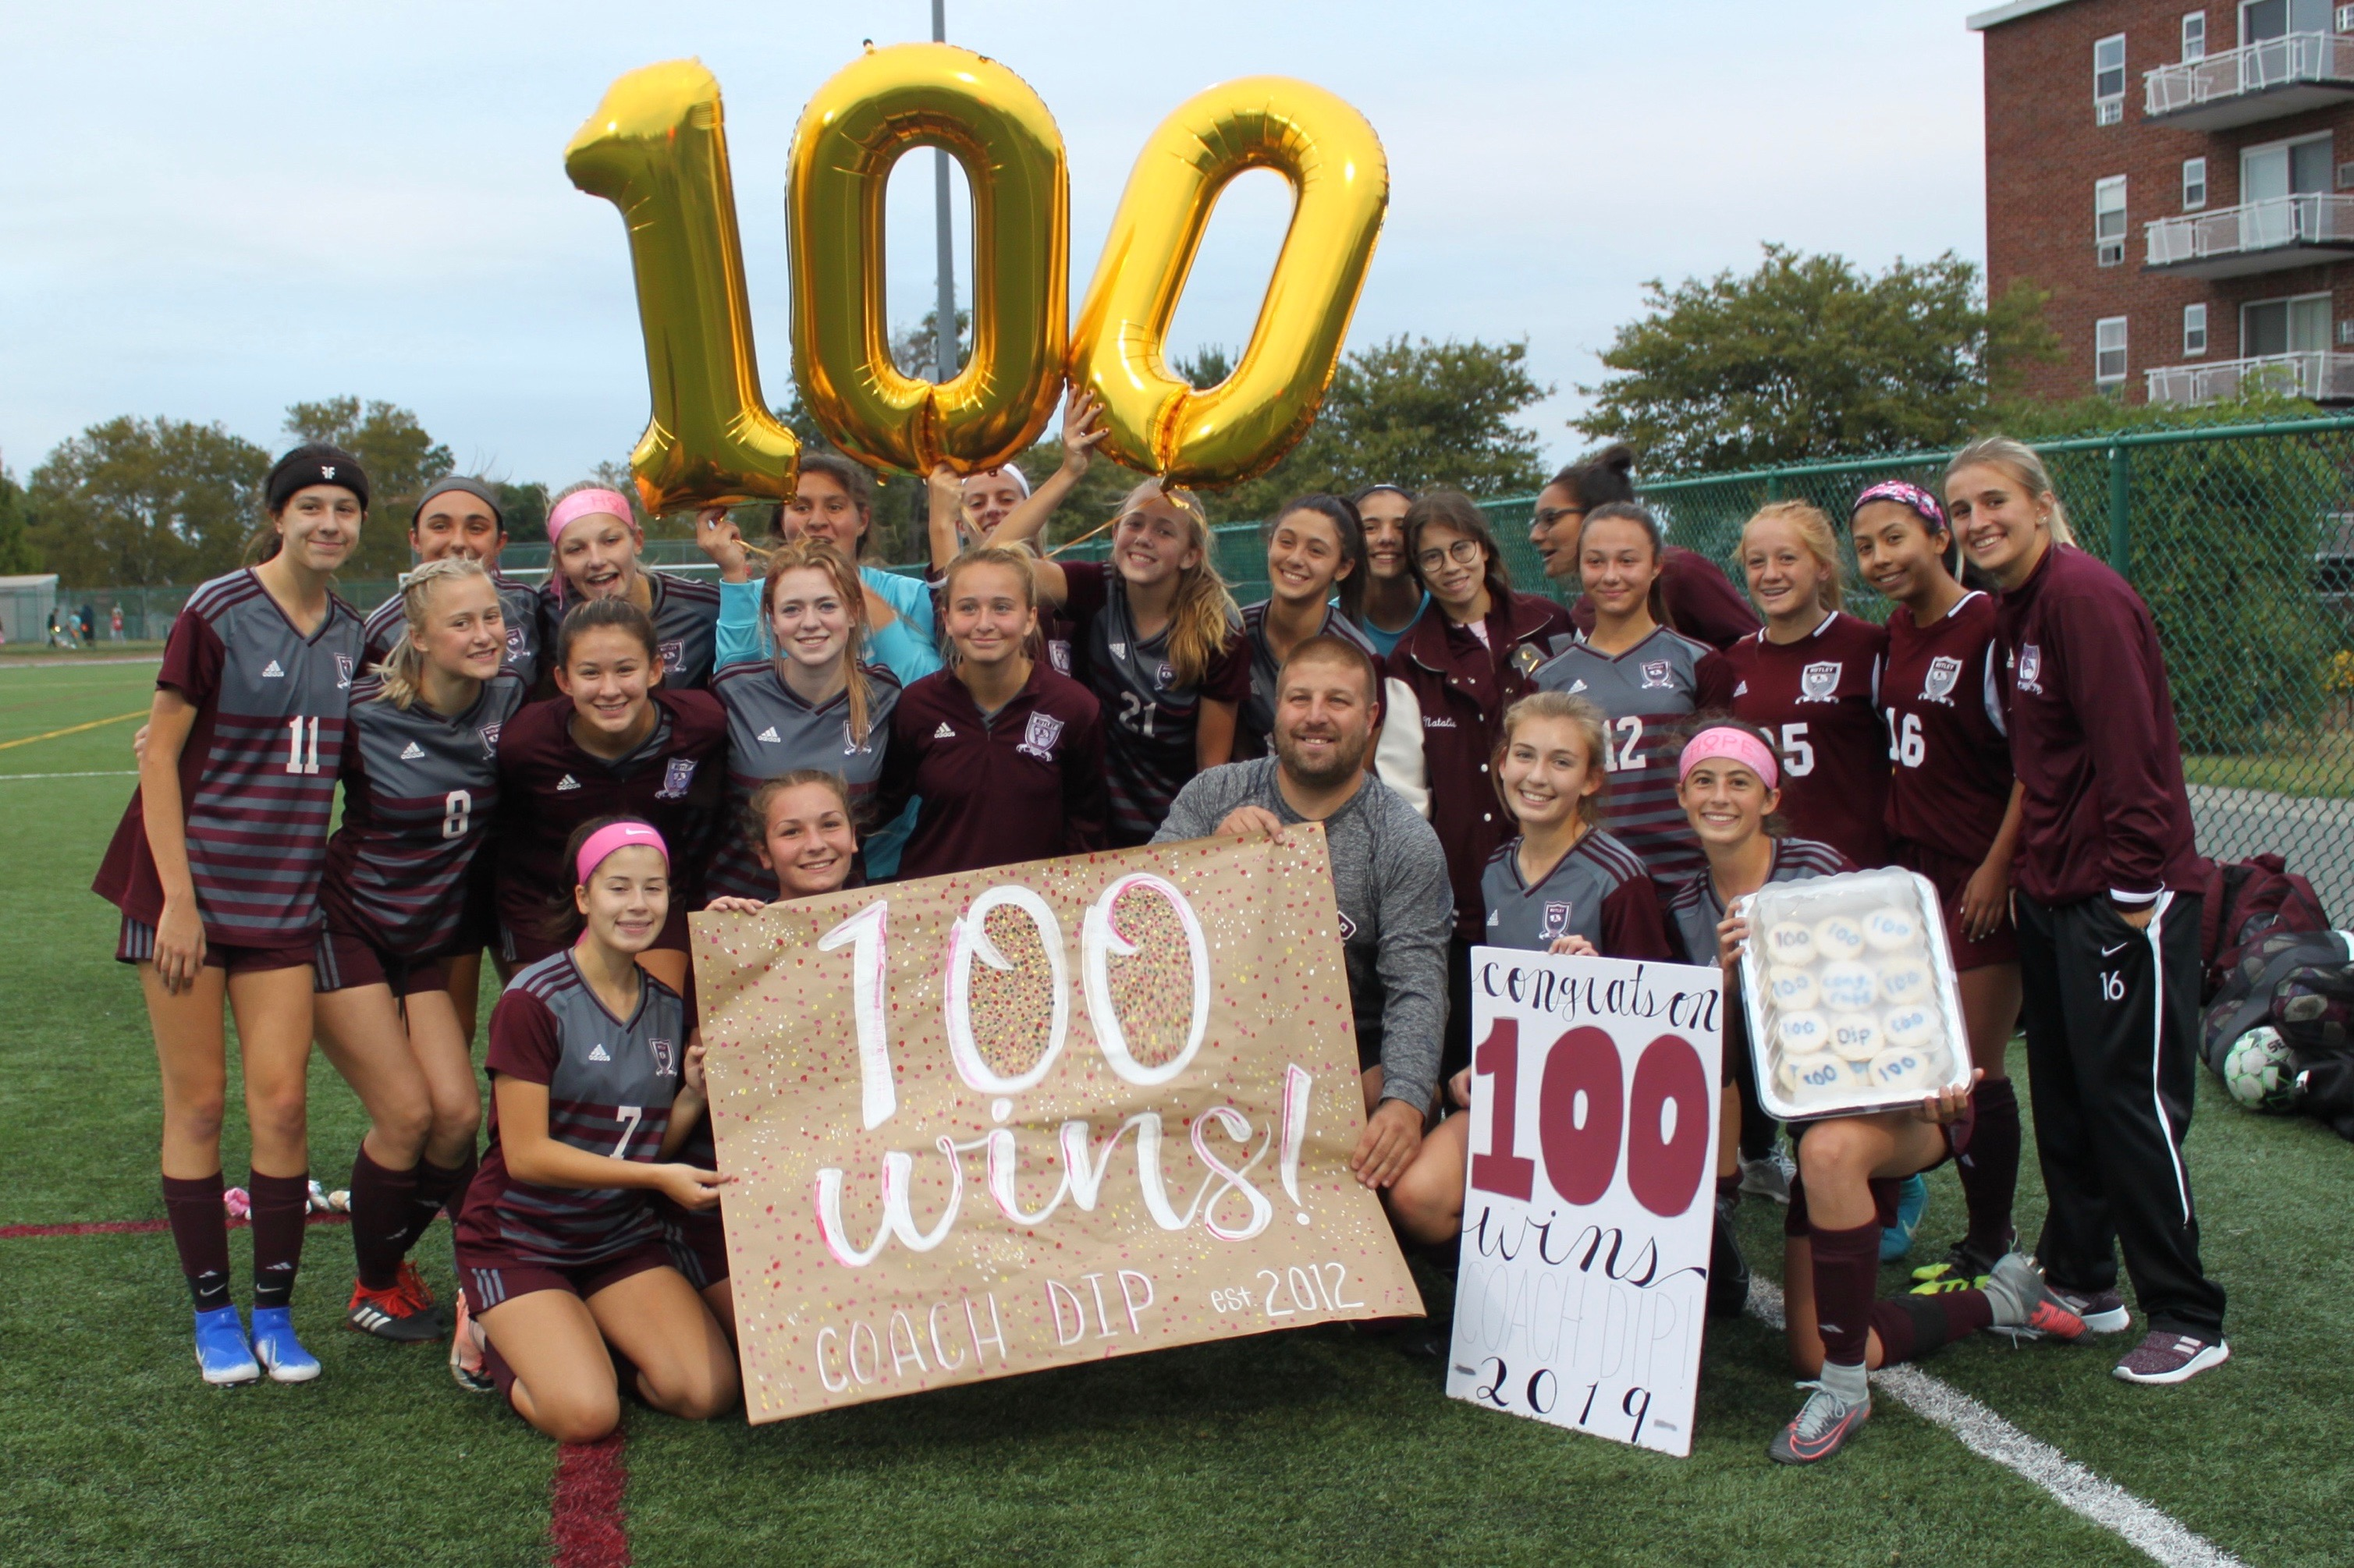 Coach DiPiano with the Nutley Girls Varsity Soccer Team.